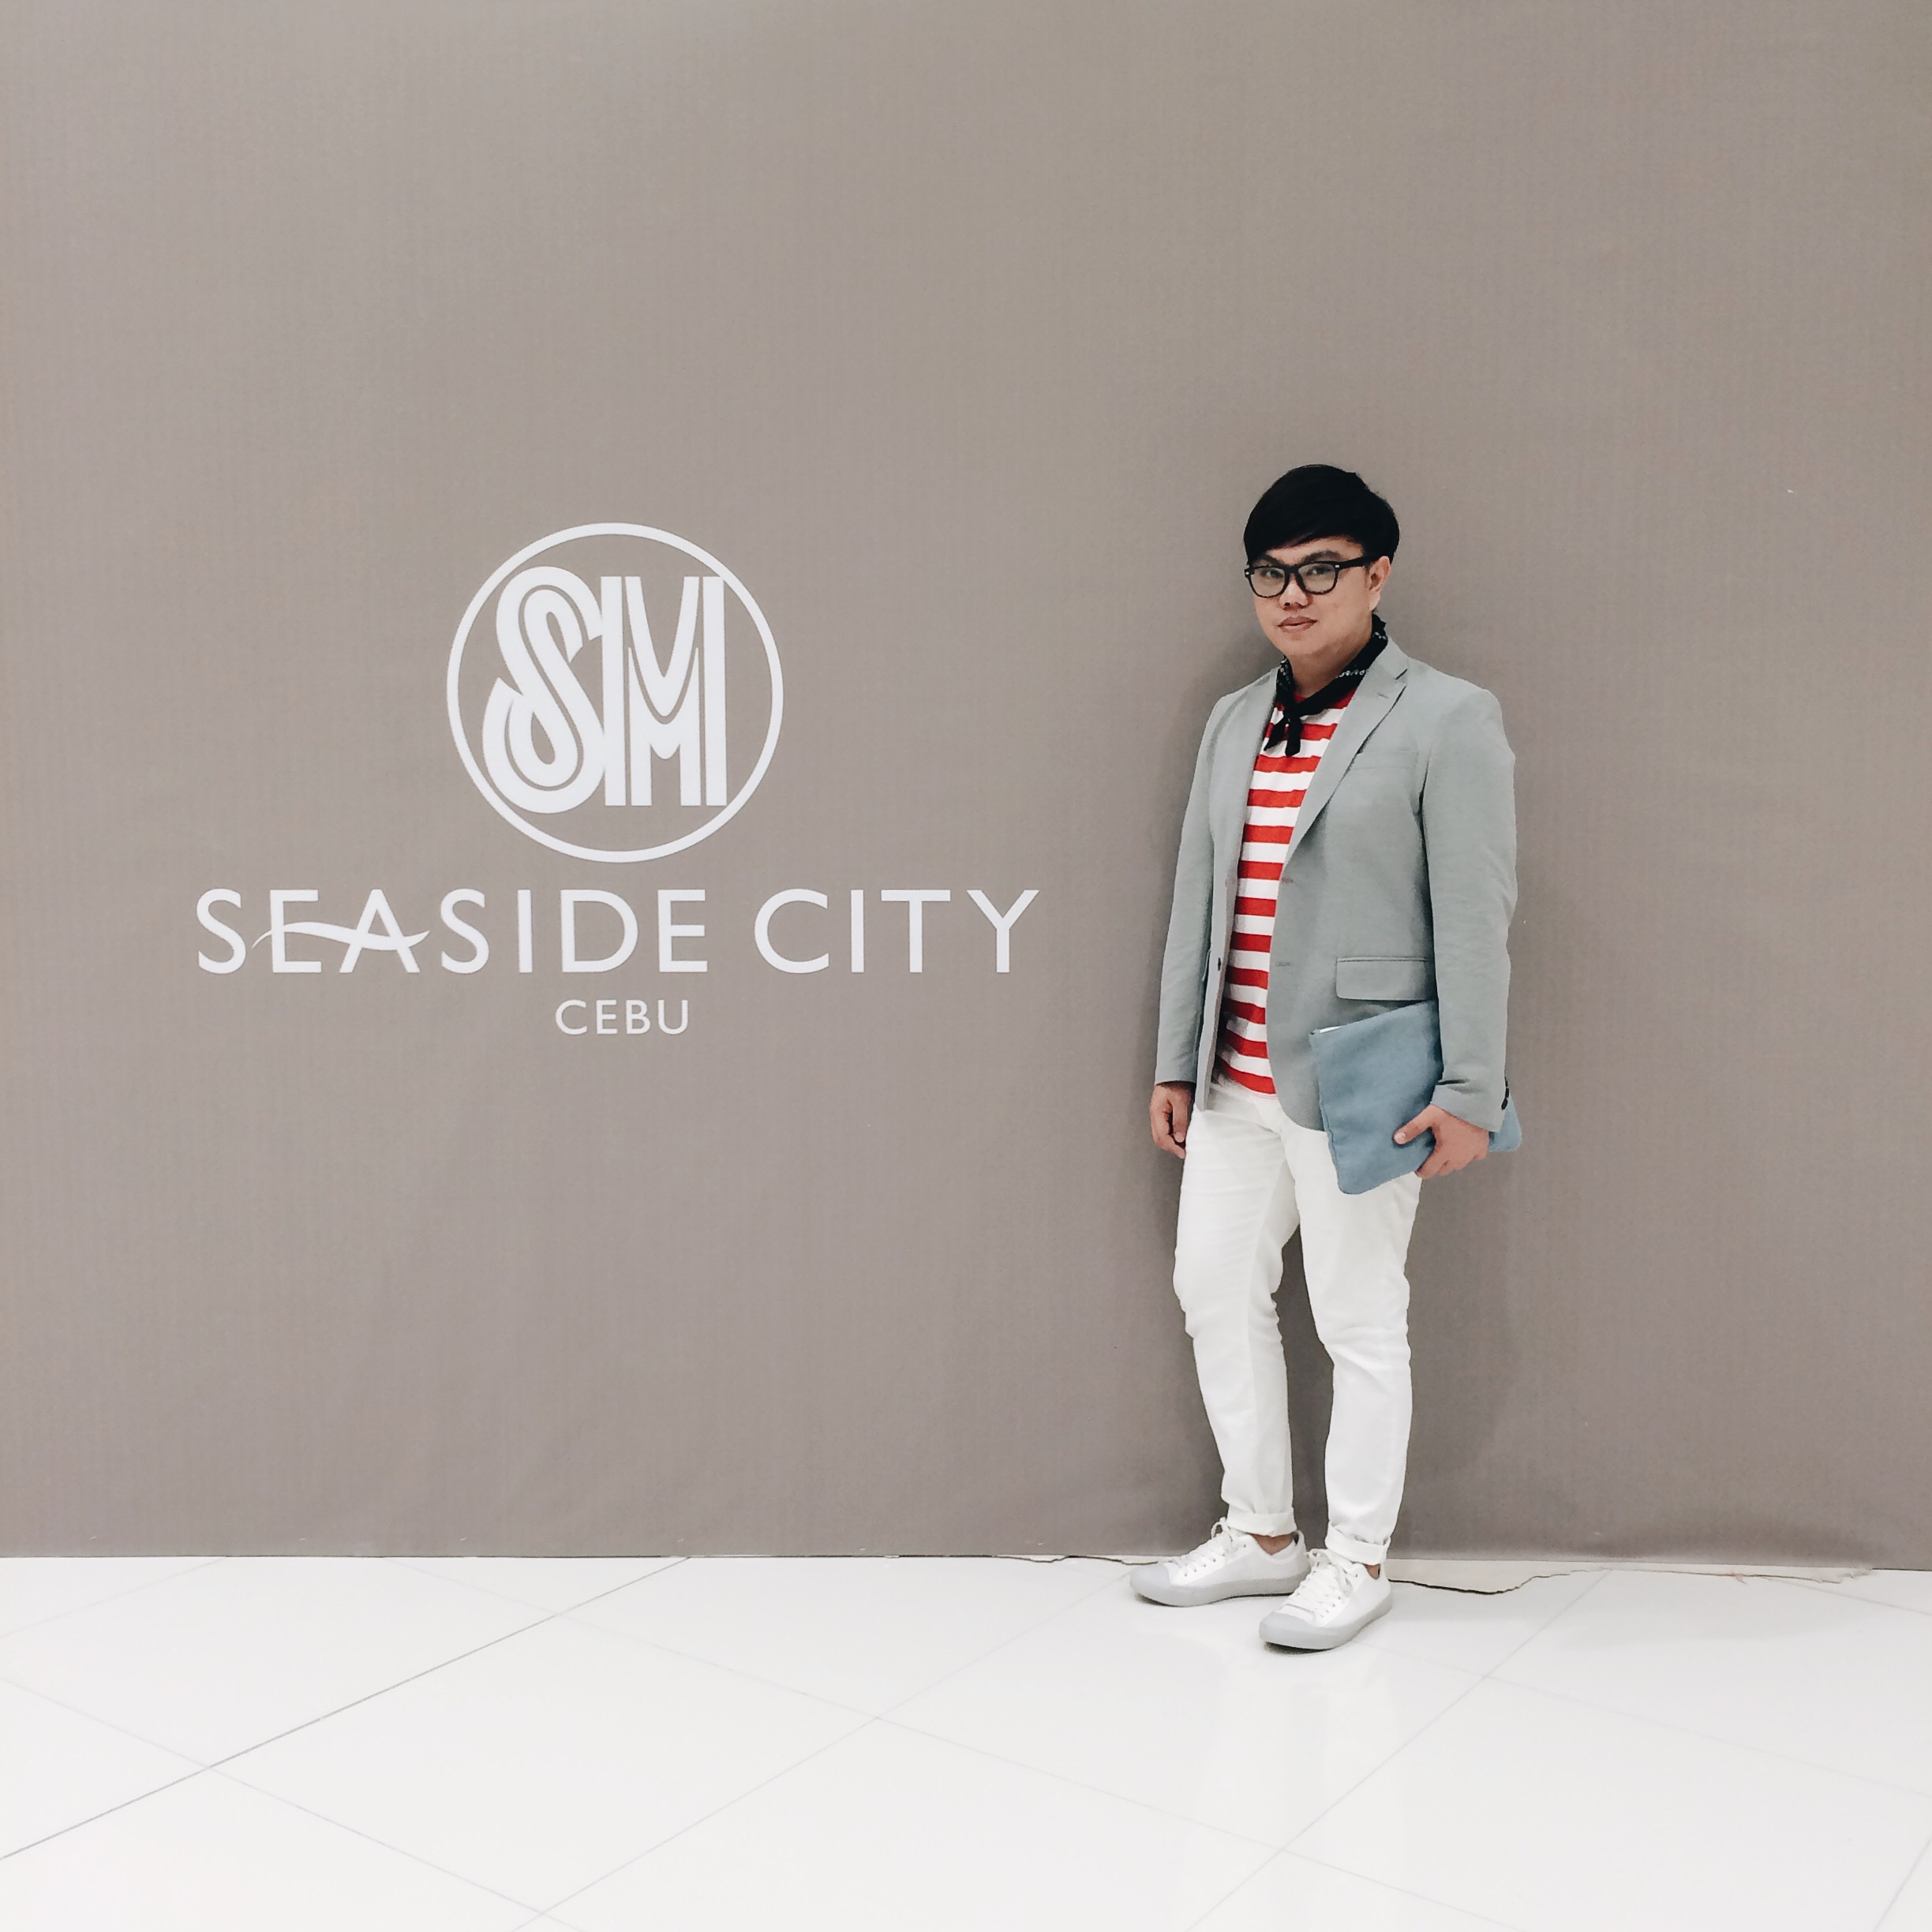 sm-seaside-city-3